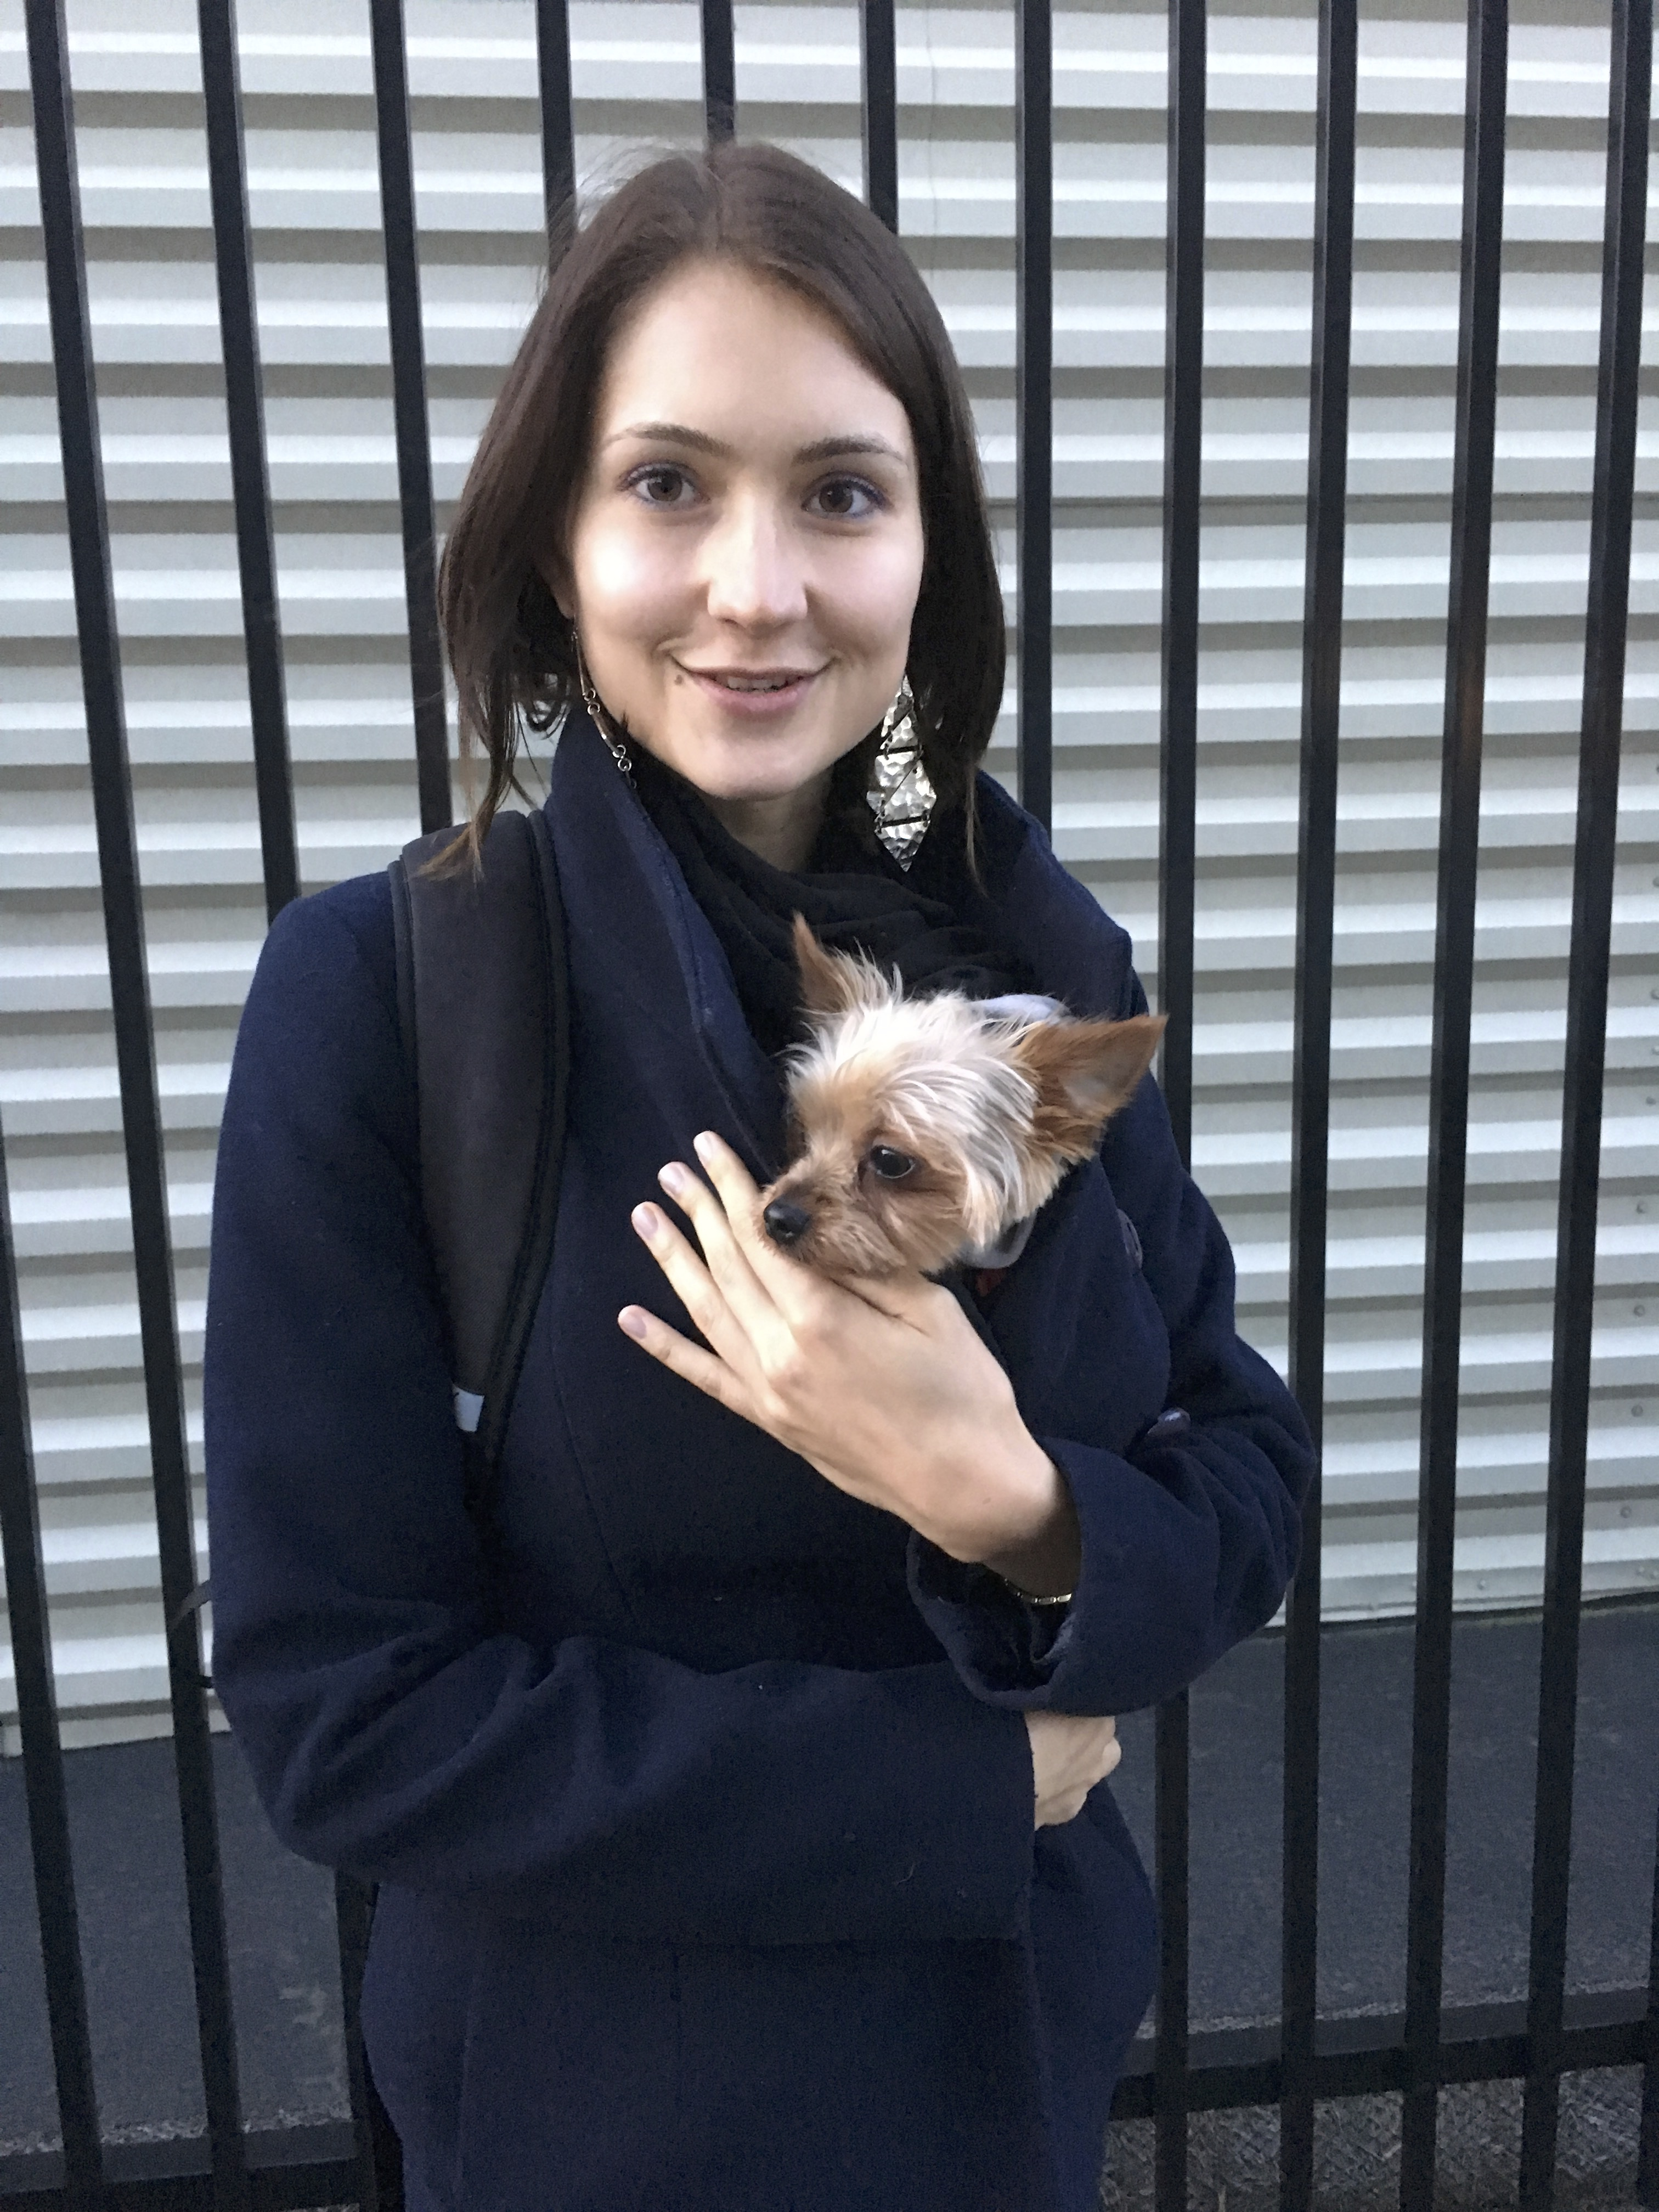 Woman Holding Yorkshire Terrier In Her Jacket For Warmth